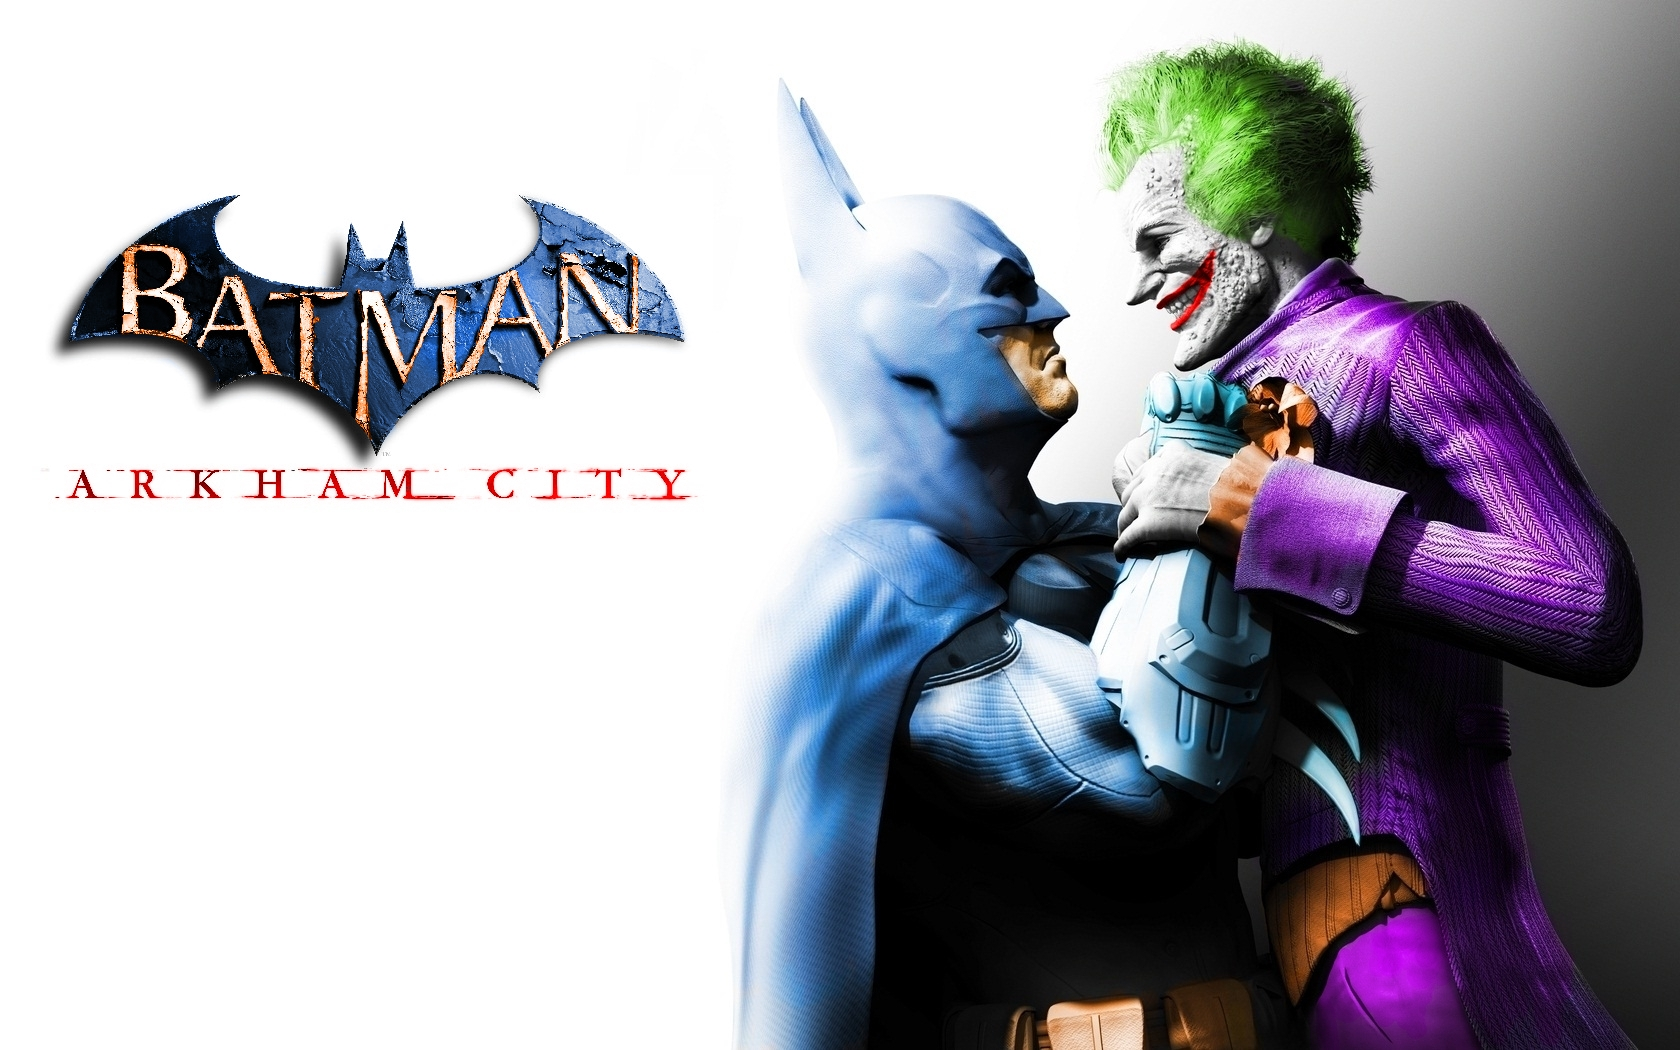 batman, arkham city, joker